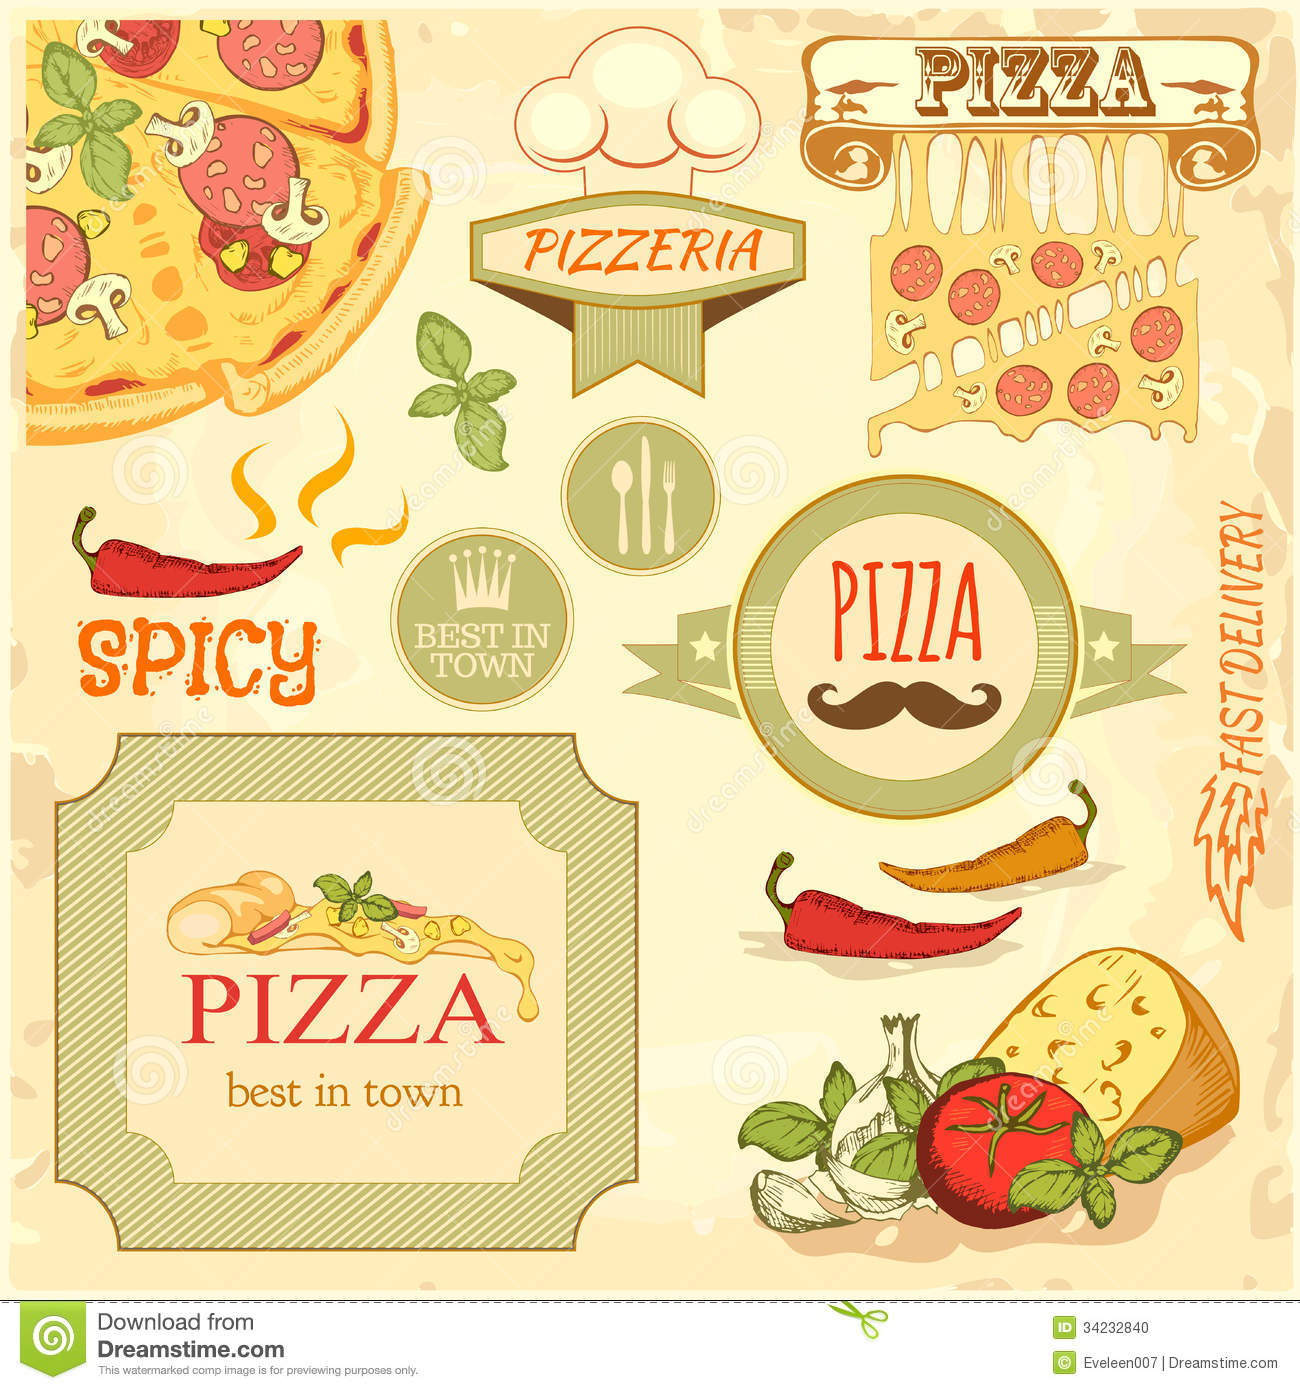 pizza clipart background #1